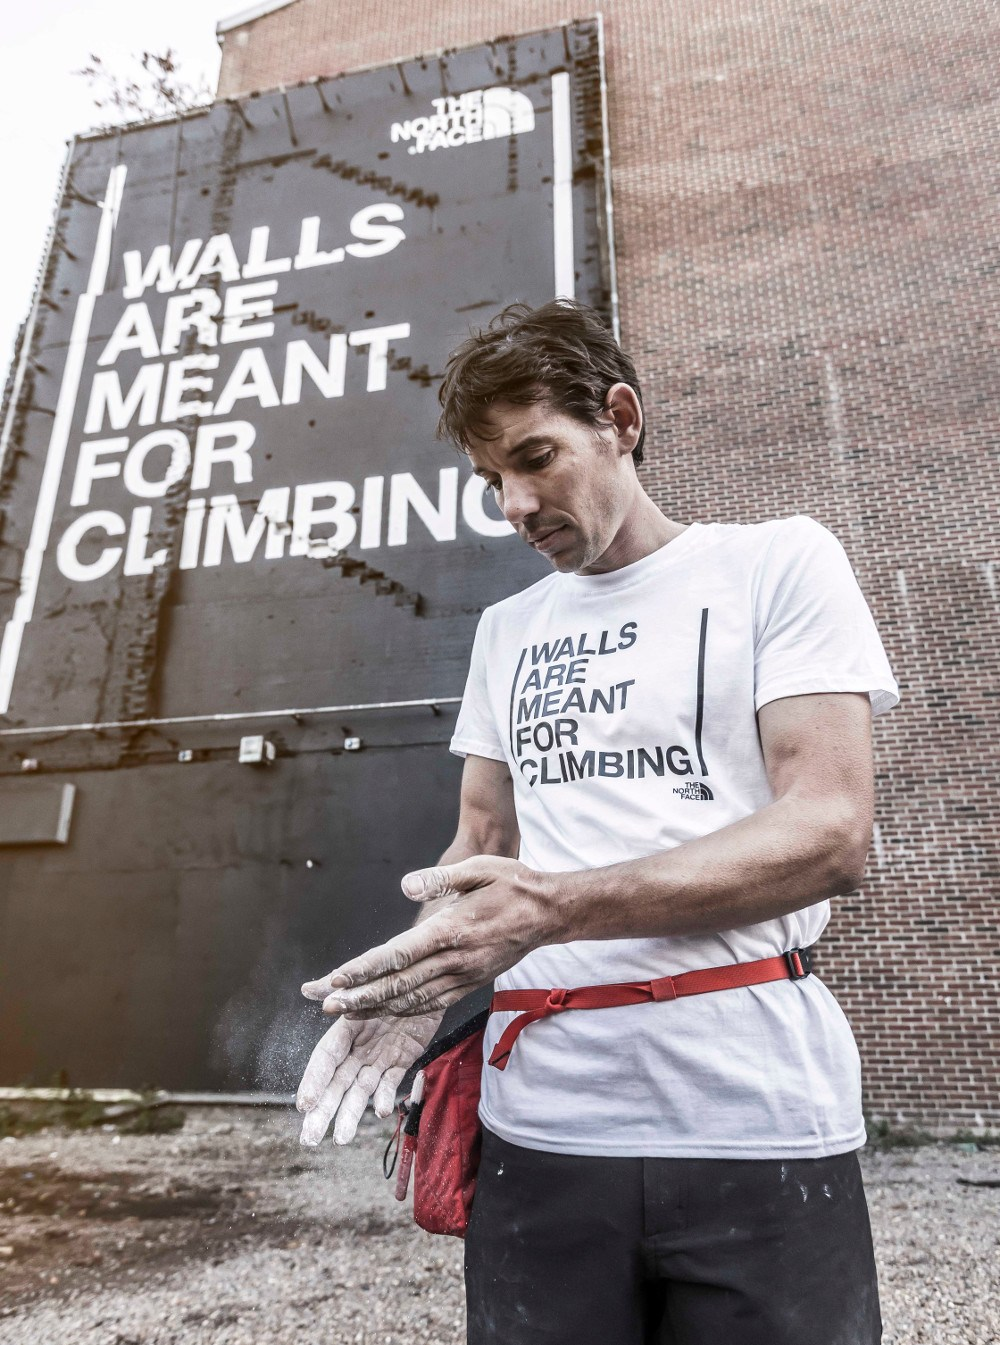 Walls-are-meant-for-climbing-2-1.jpg